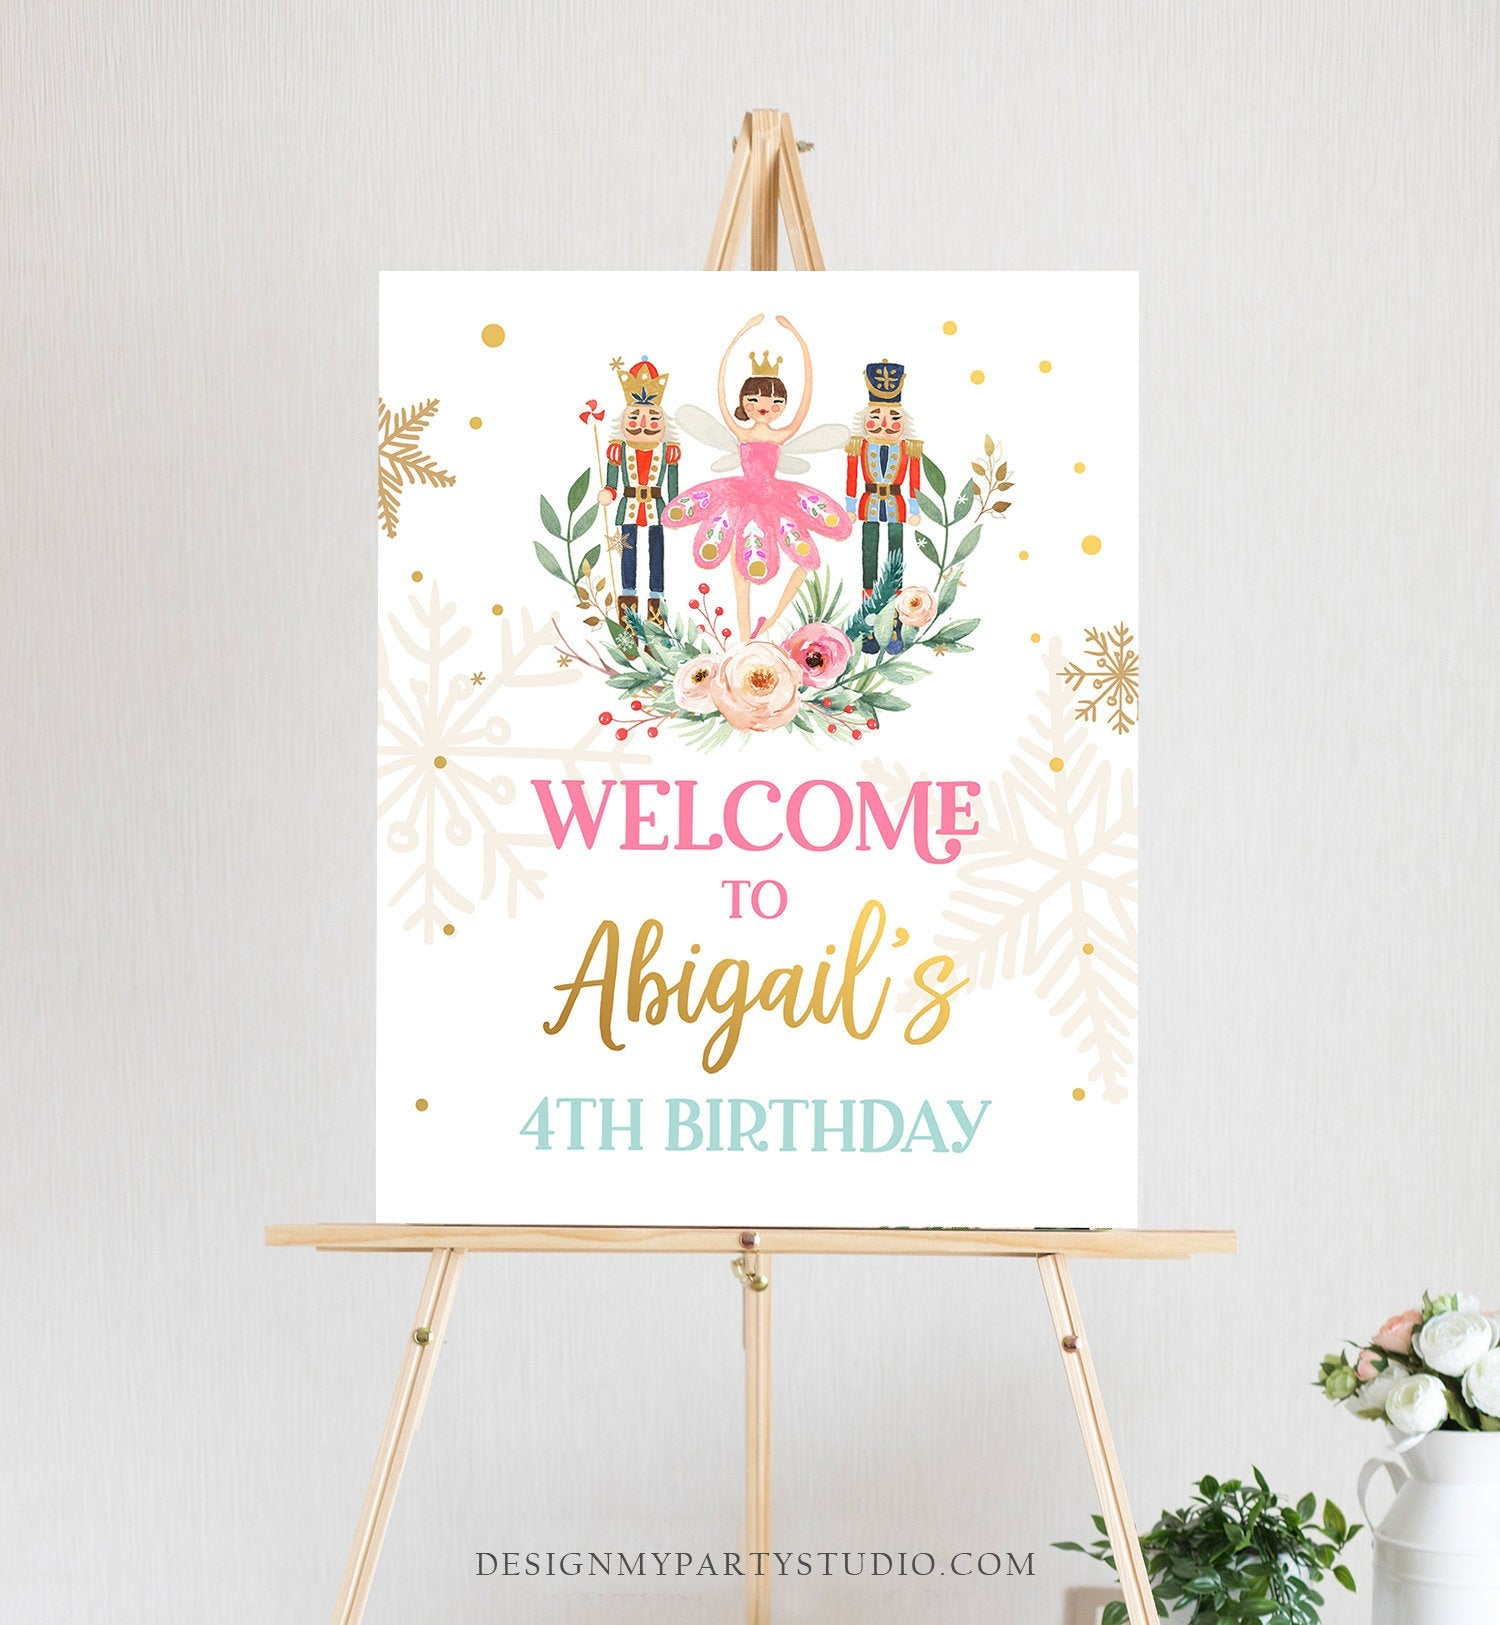 Editable Nutcracker Birthday Welcome Sign Winter Birthday Girl Sugar Plum Fairy Christmas Party Holiday Sign Template PRINTABLE Corjl 0352